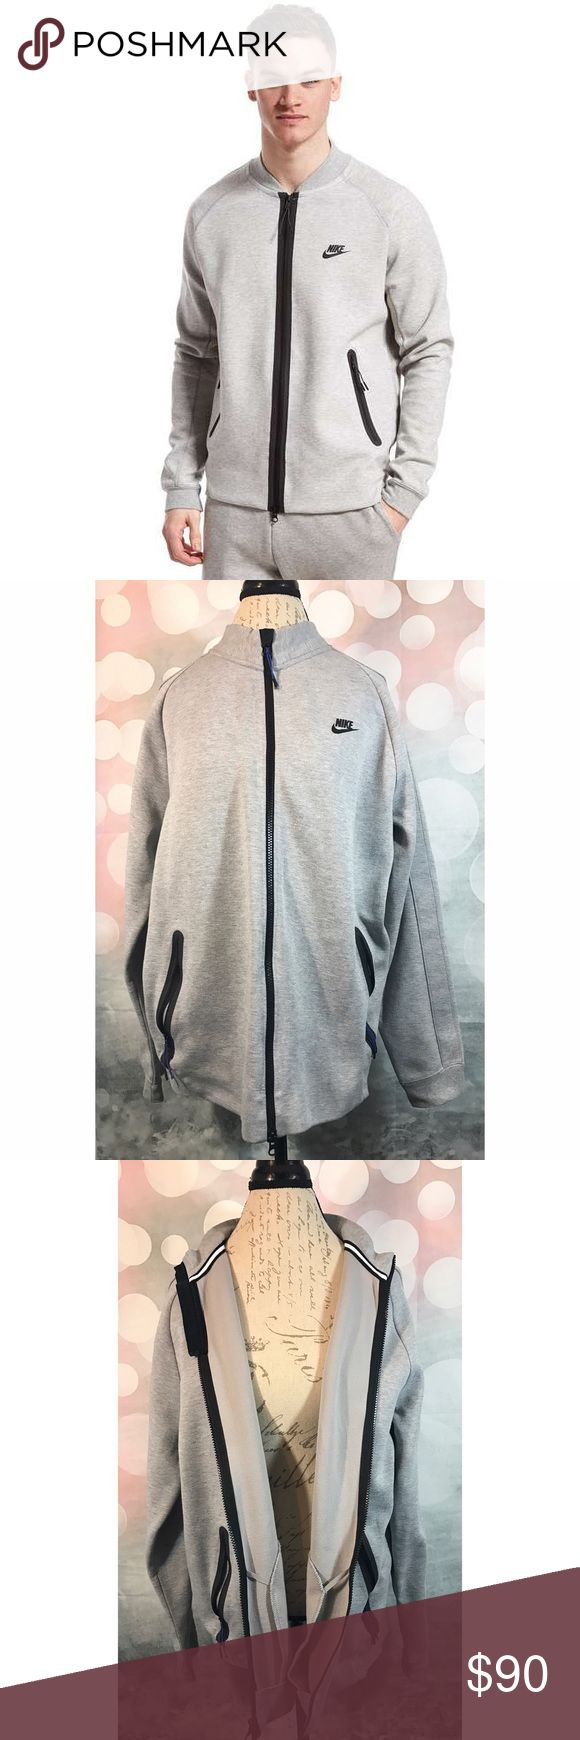 """Men's Nike Tech Varsity Jacket Grey Zippered XL An amazing piece from Nike, their higher quality items, Nike Tech Fleece. The style is: Varsity Jacket. Color is grey and features an opened Zippered front and two side pockets. Size XL. Item is lightly worn and in amazing condition, with only noted """"flaw"""" being small fading on top zipper portion, as pictured, nothing major.   Additional Information:  Made in: China  Material: 66% cotton, 34% Polyester Nike Tech Sweaters Zip Up"""